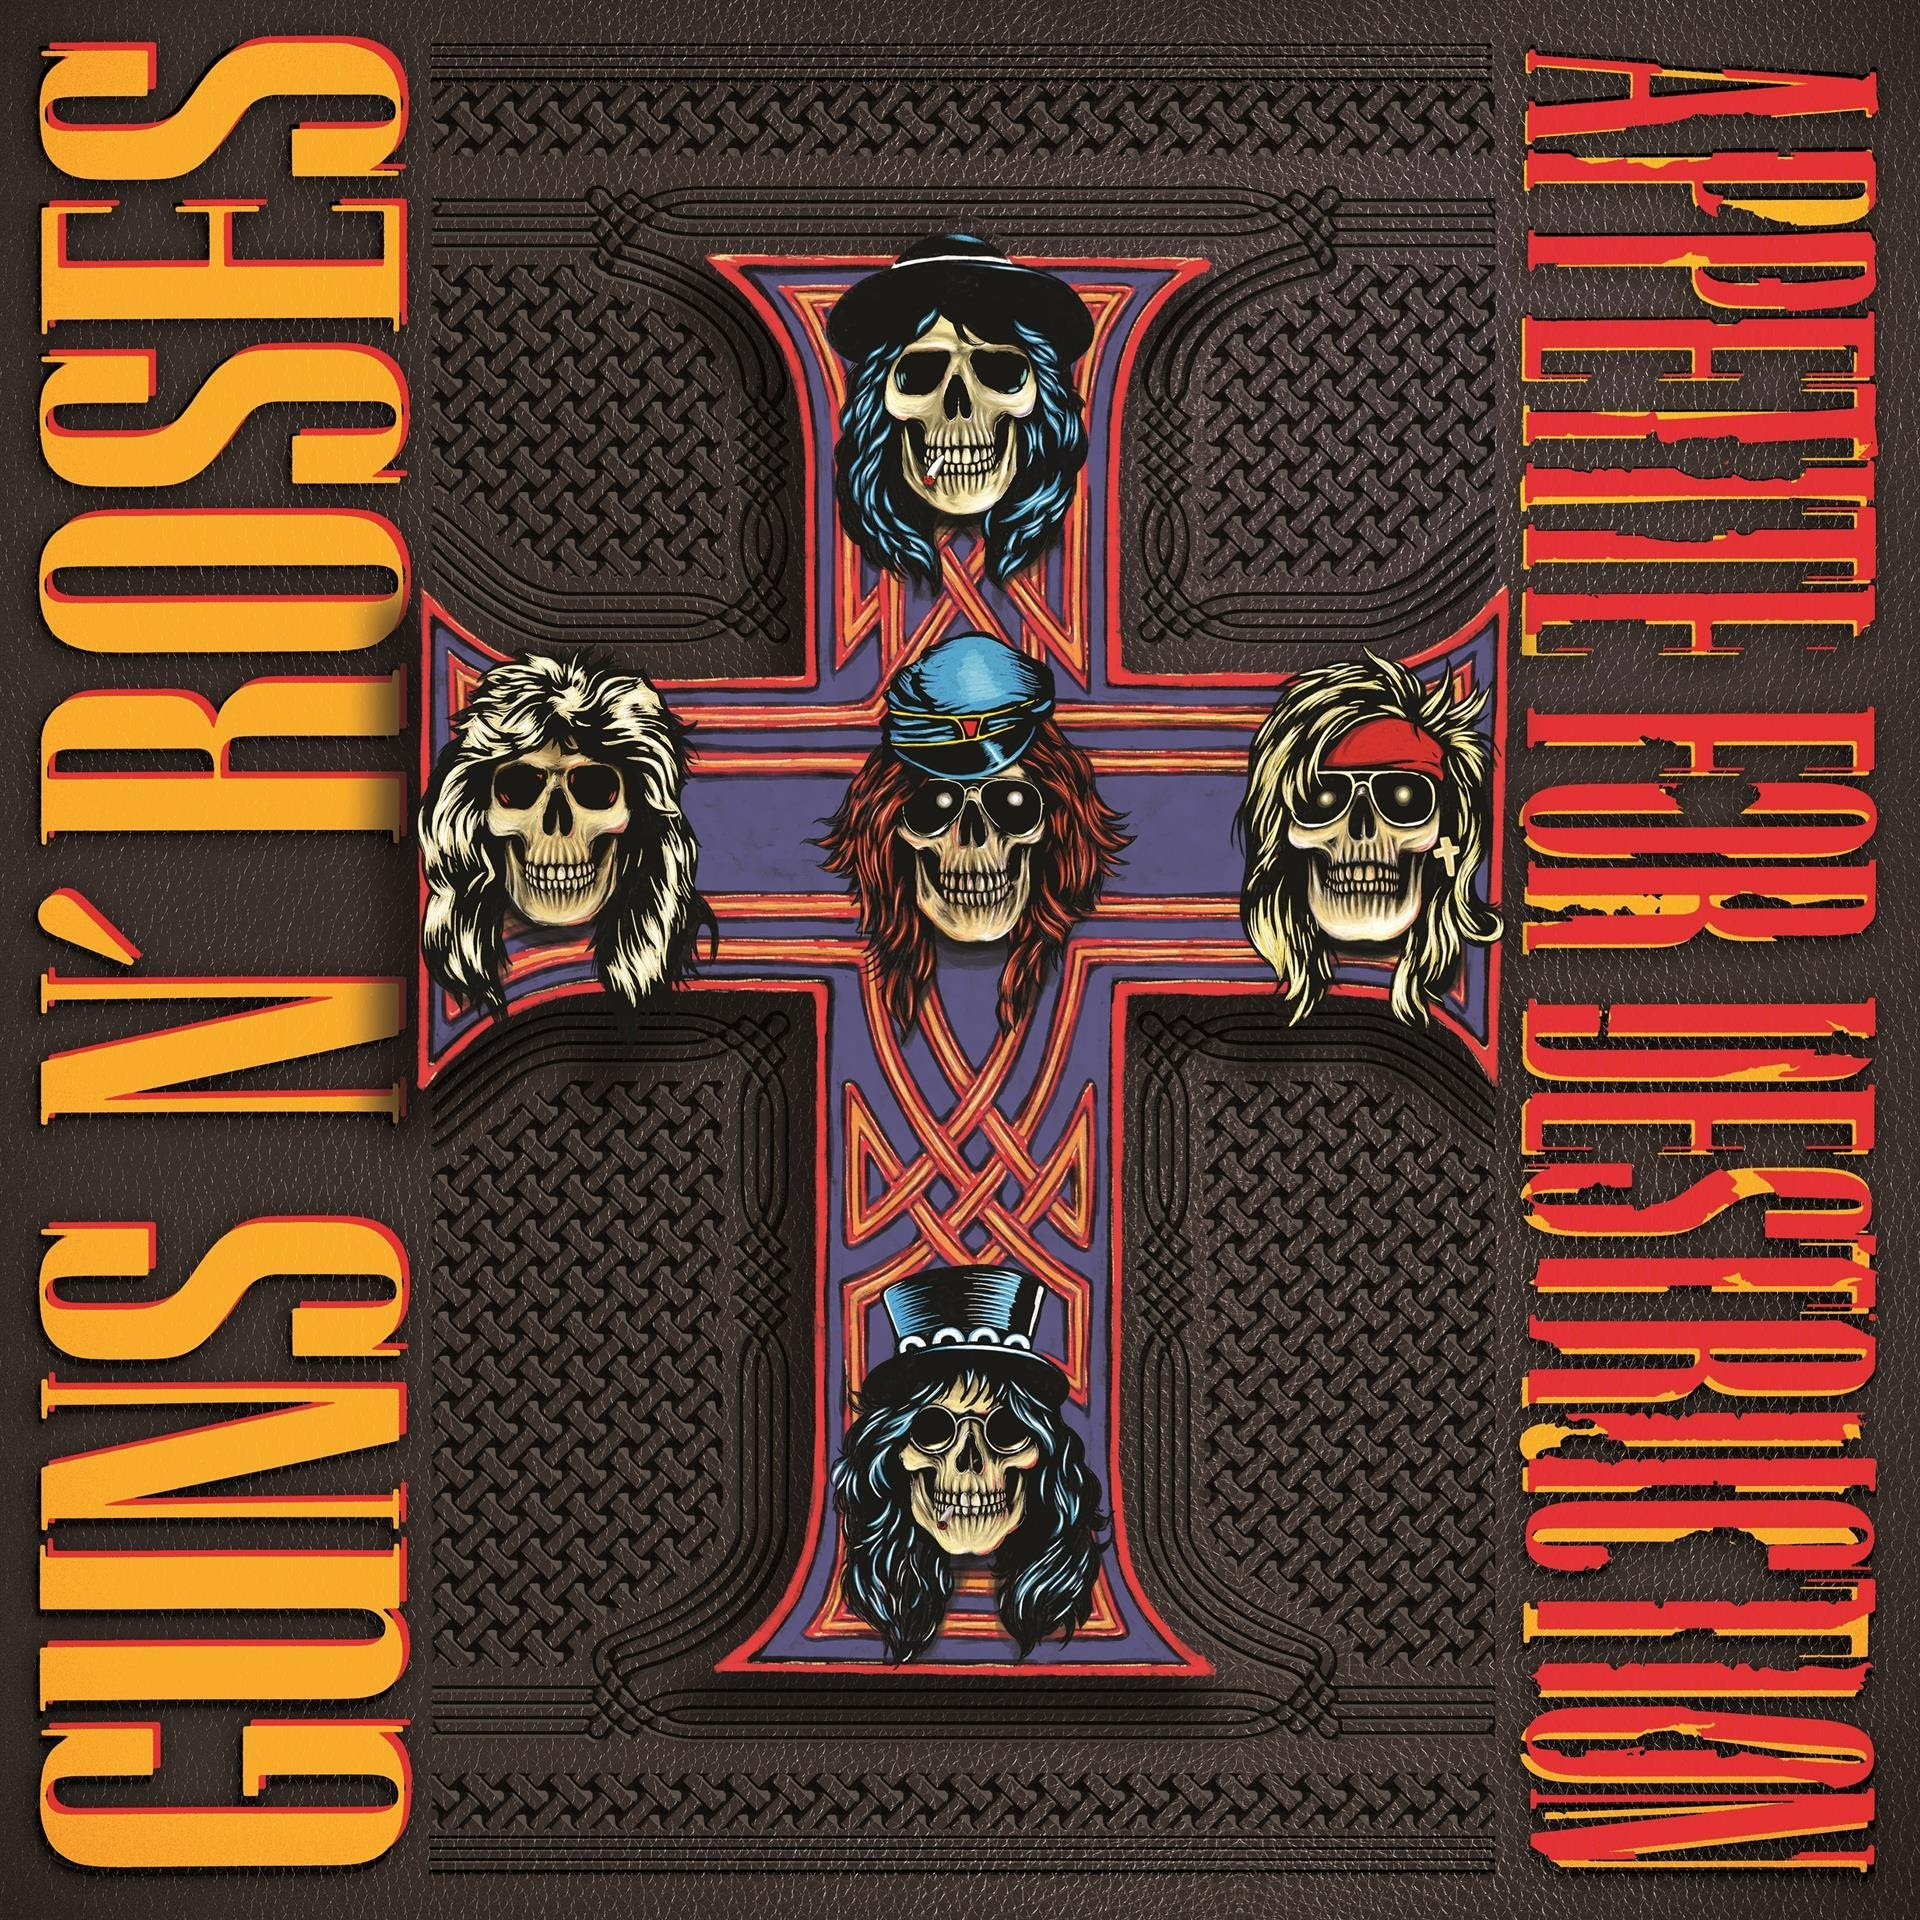 Review: Guns N' Roses, Appetite for Destruction: Super Deluxe